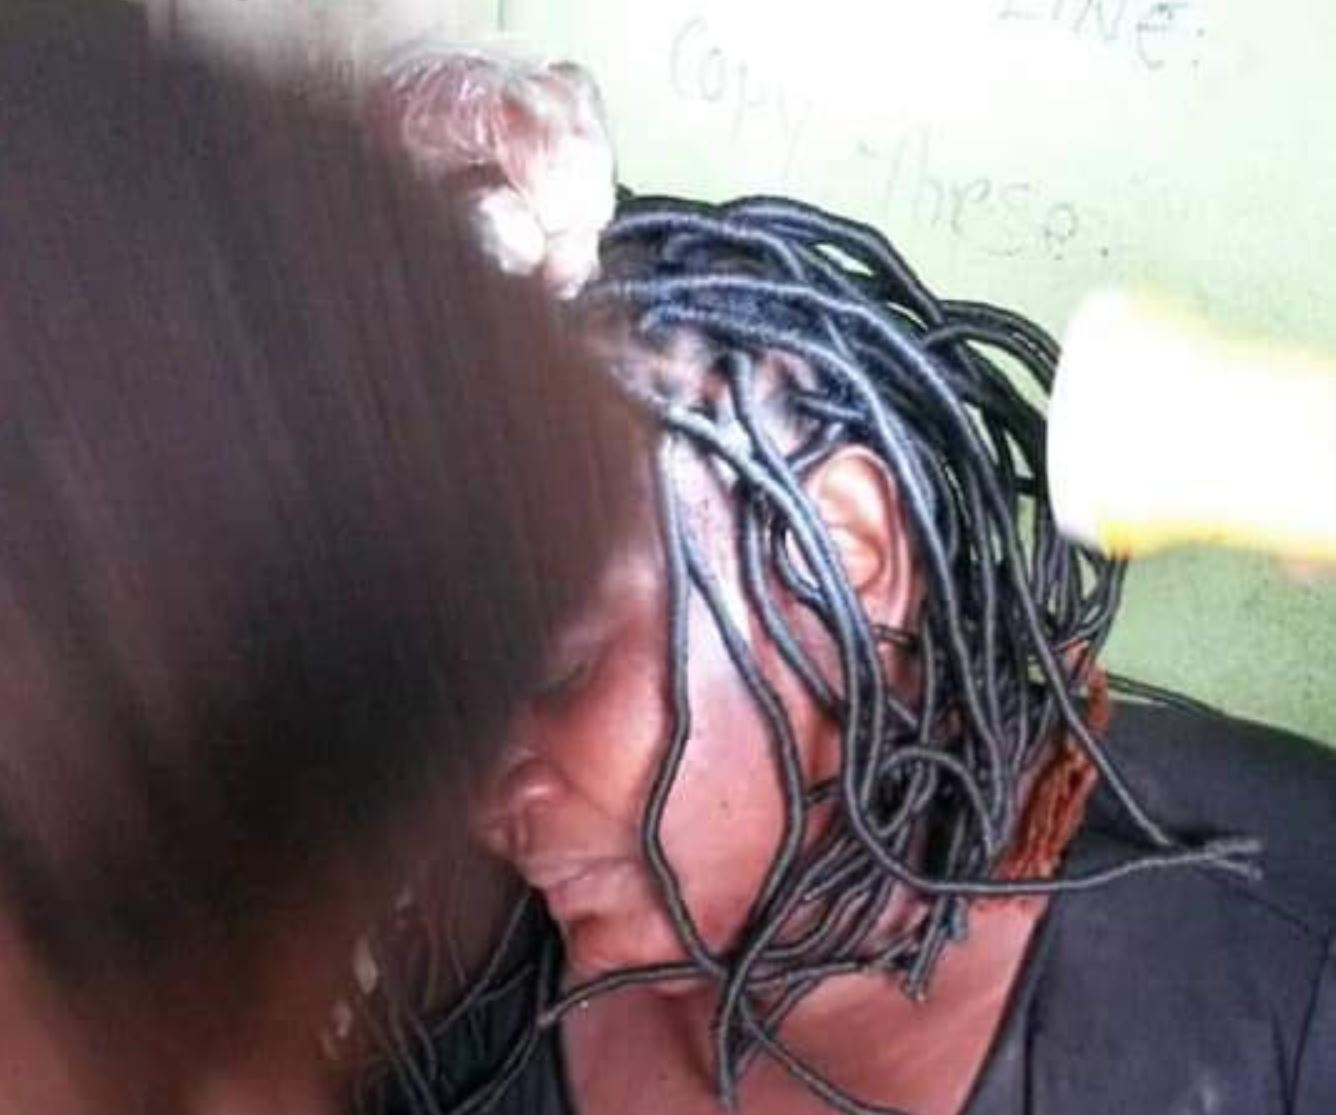 PHOTOS: Nigerian man flees after breaking his wife's head with pestle